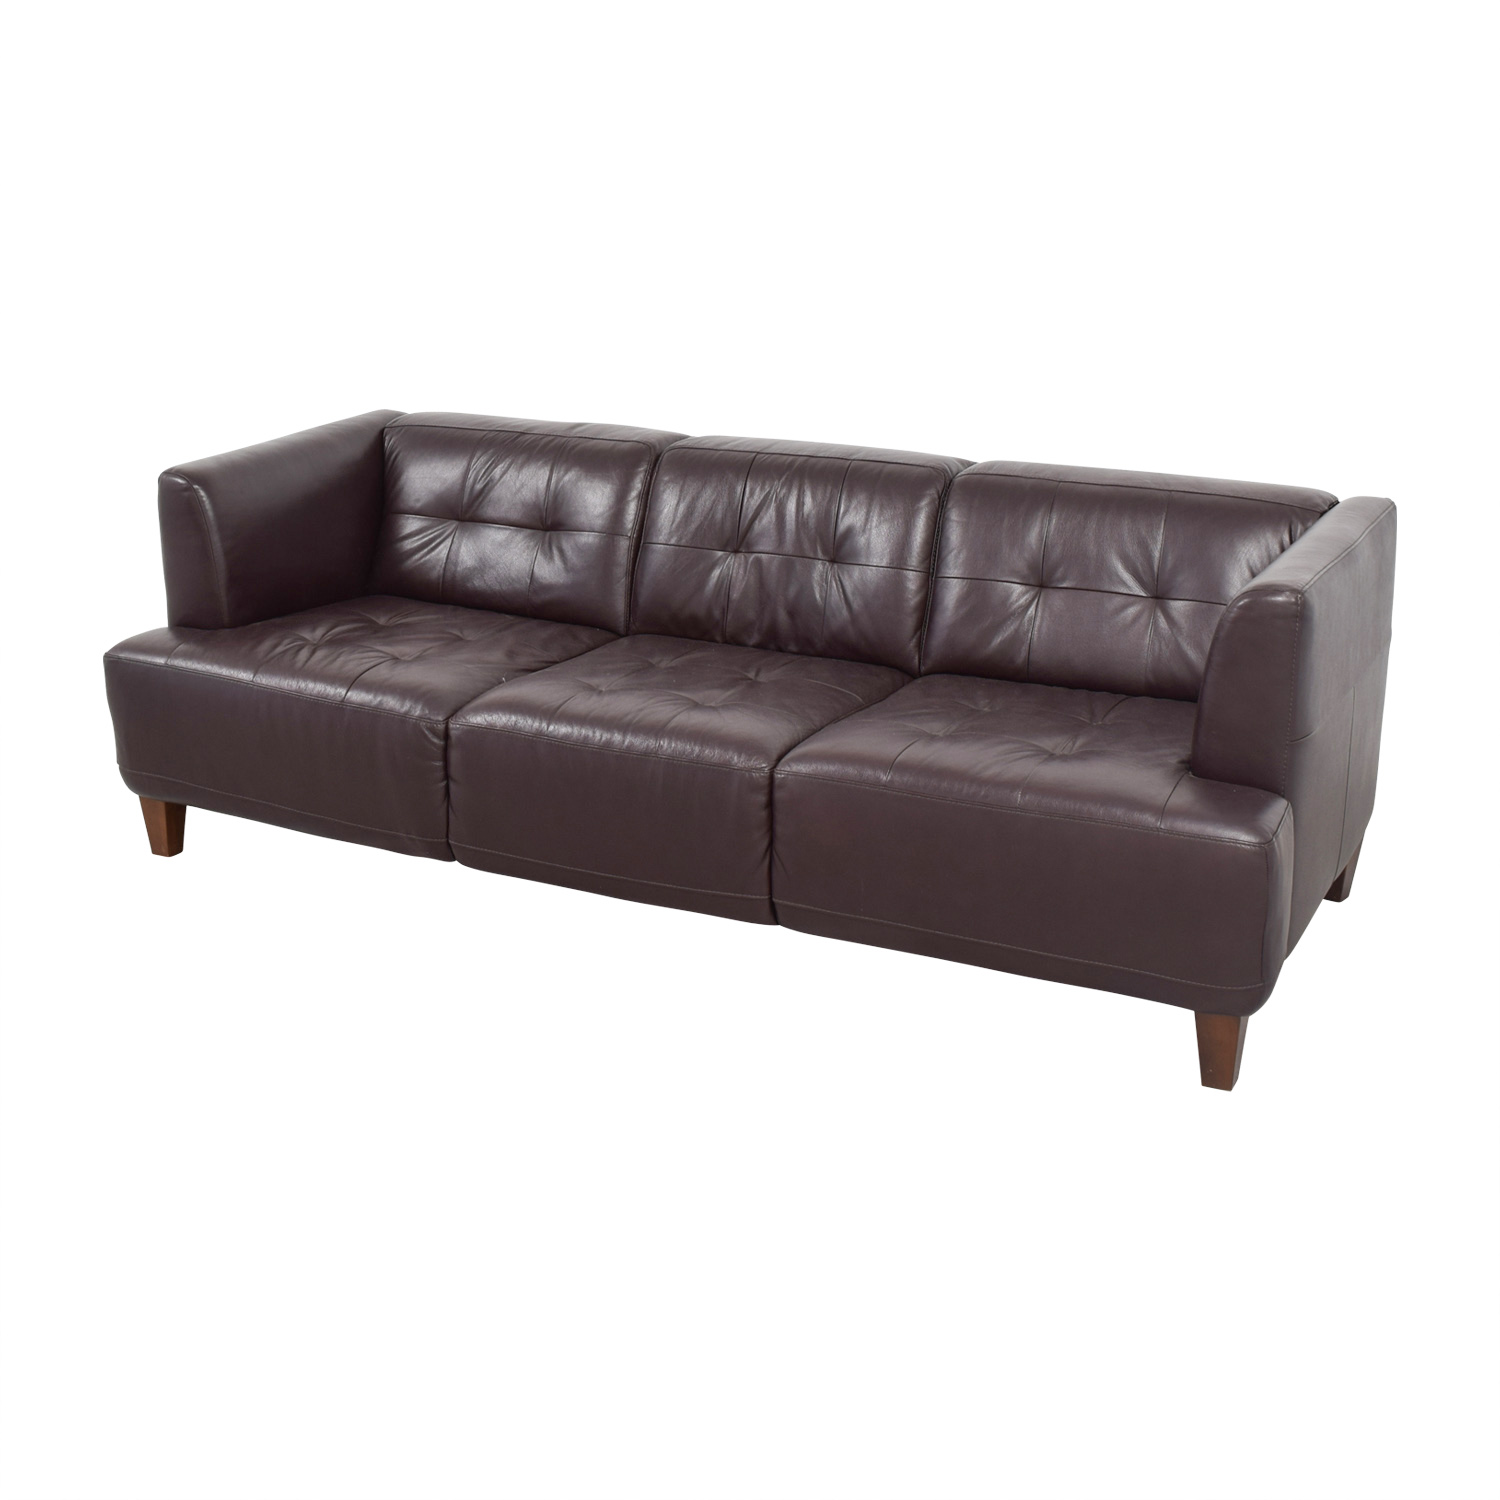 85 Off Macy S Macy S Brown Tufted Leather Couch Sofas